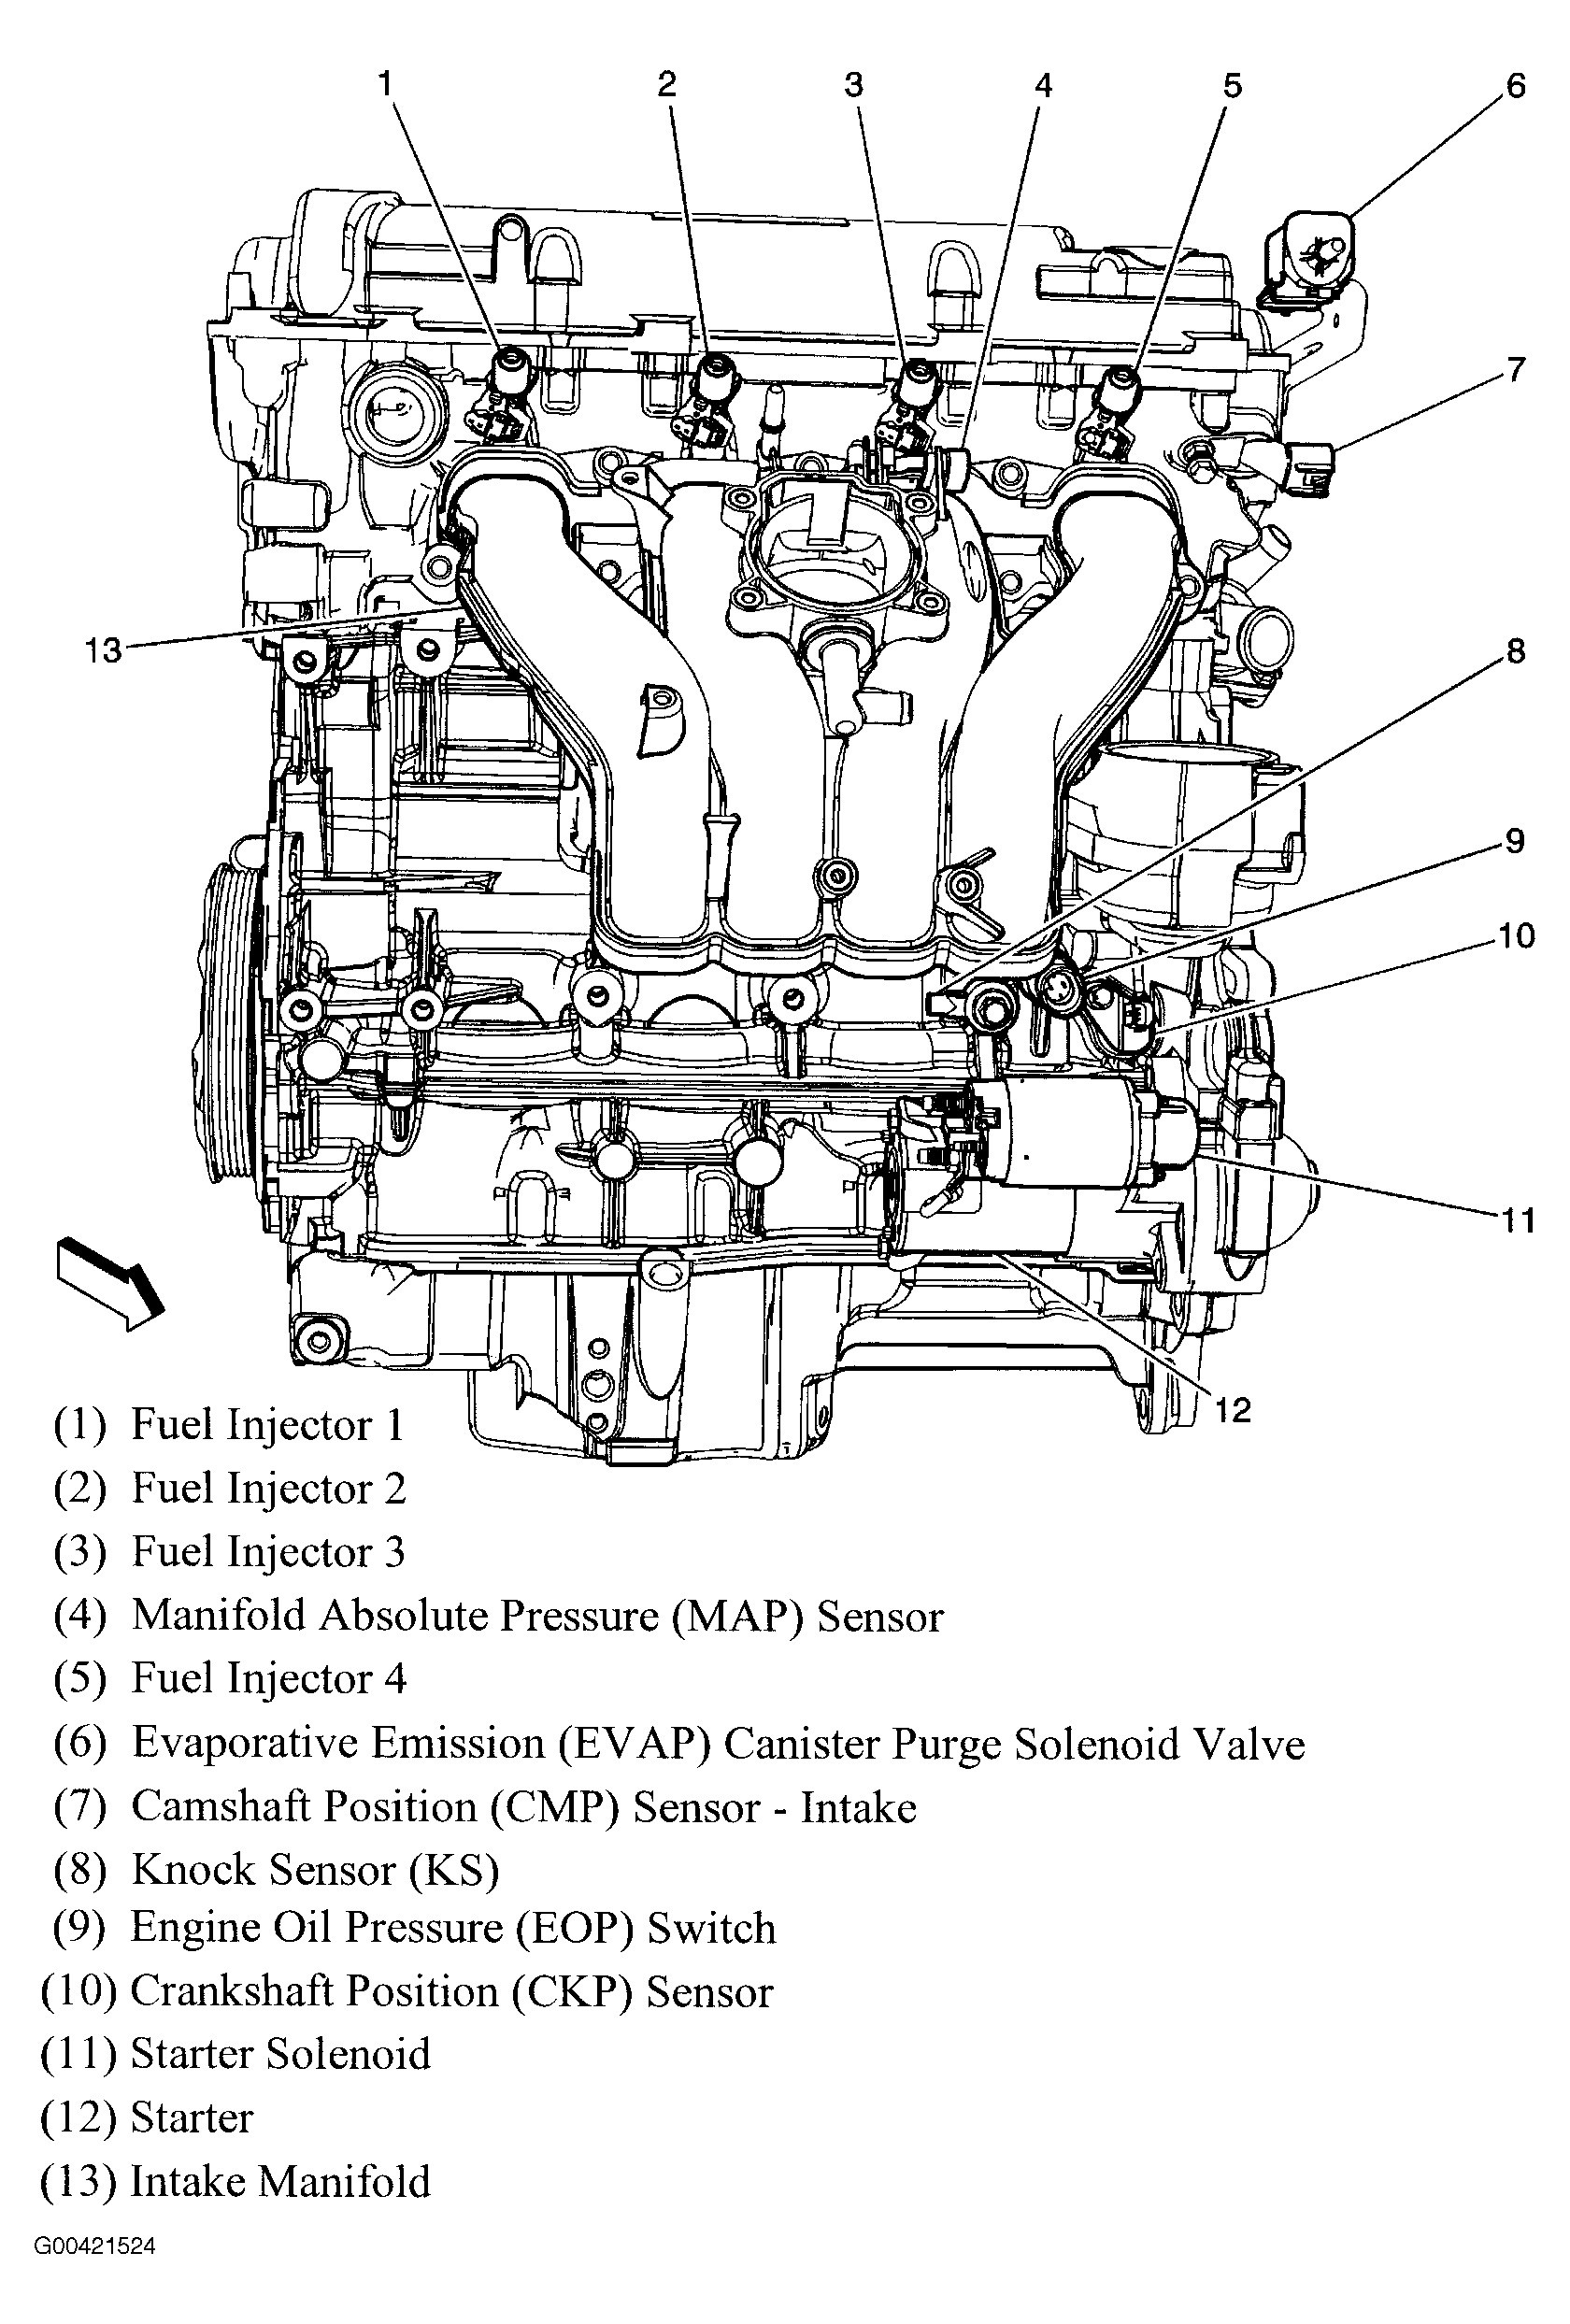 2007 chevy aveo belt diagram 3 phase wire 2011 impala engine wiring library